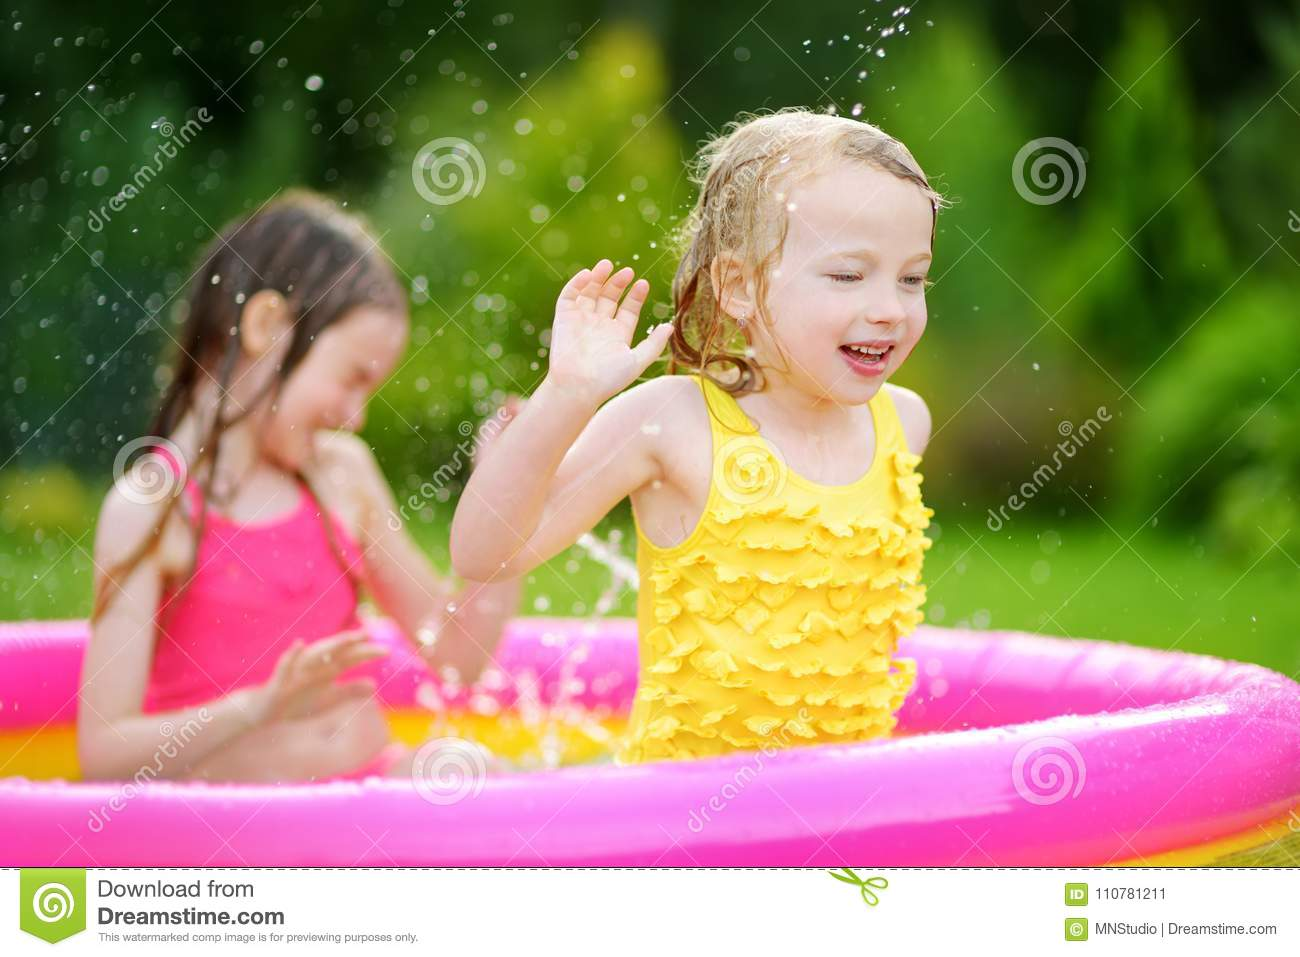 Adorable little girls playing in inflatable baby pool. Happy kids splashing in colorful garden play center on hot summer day.